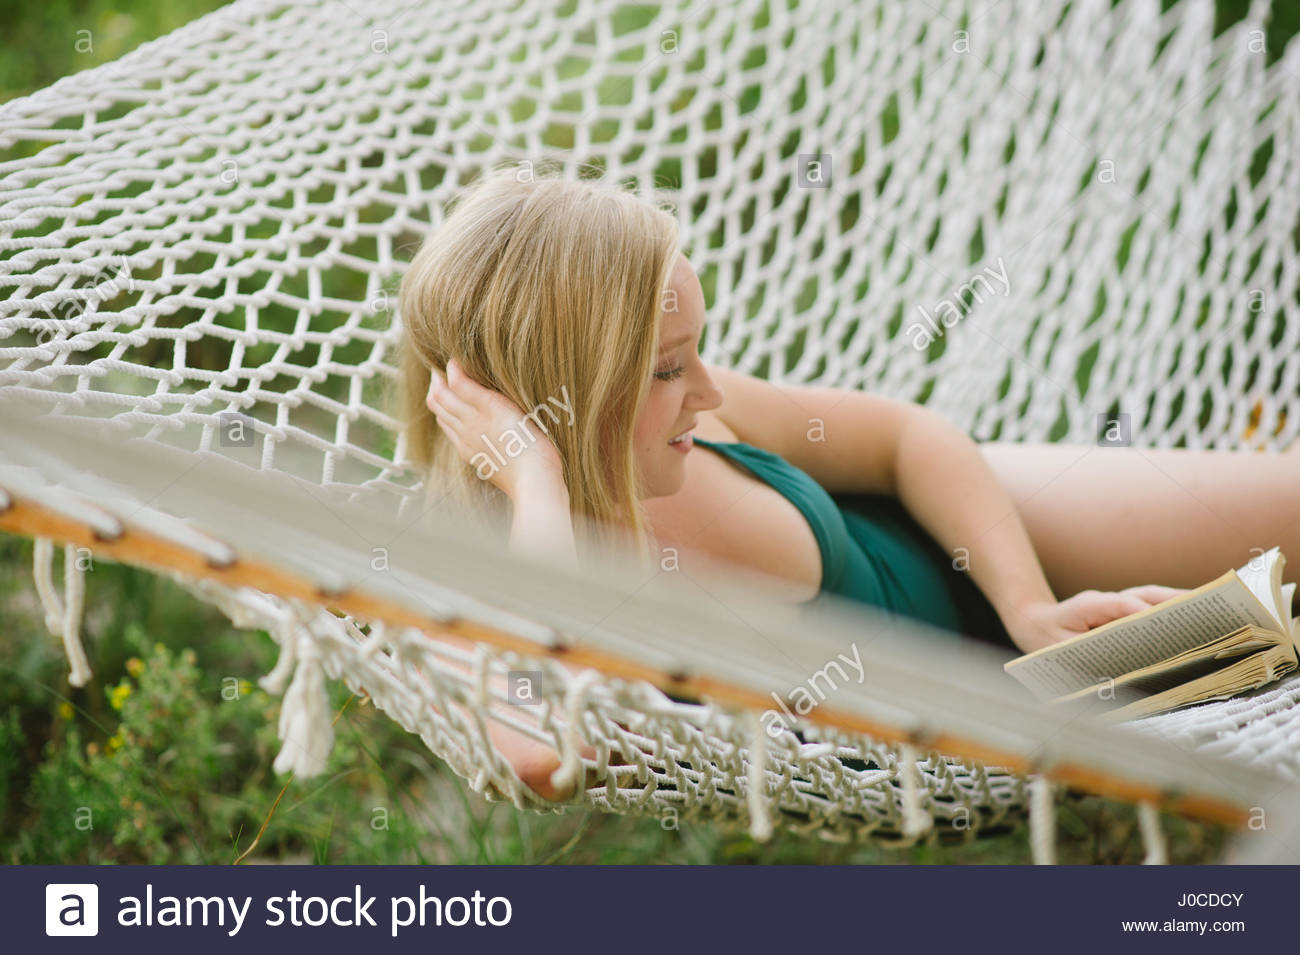 Young woman reading book on beach hammock - Stock Image